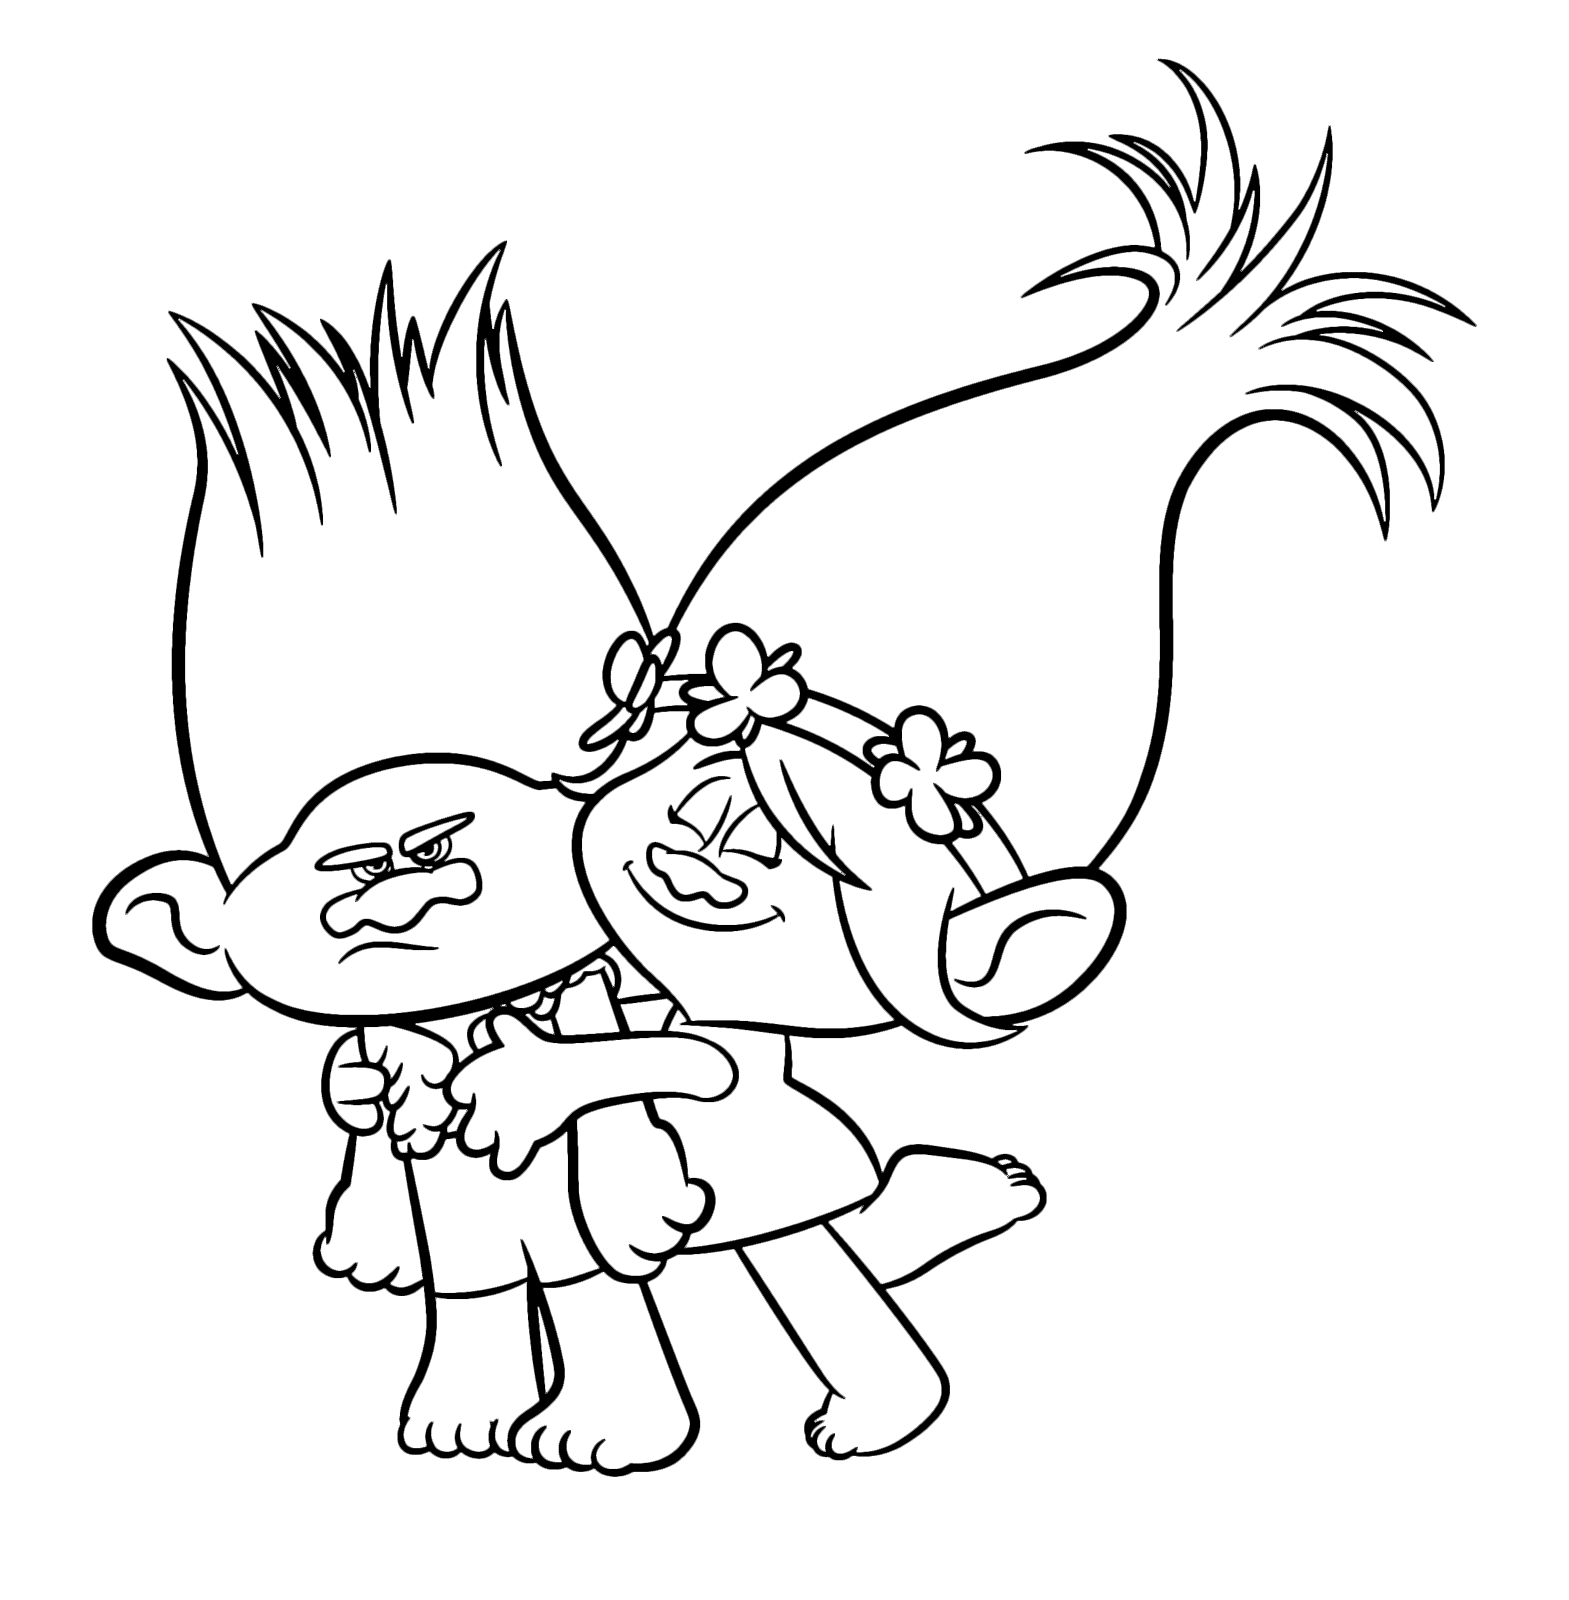 HD wallpapers troll coloring page